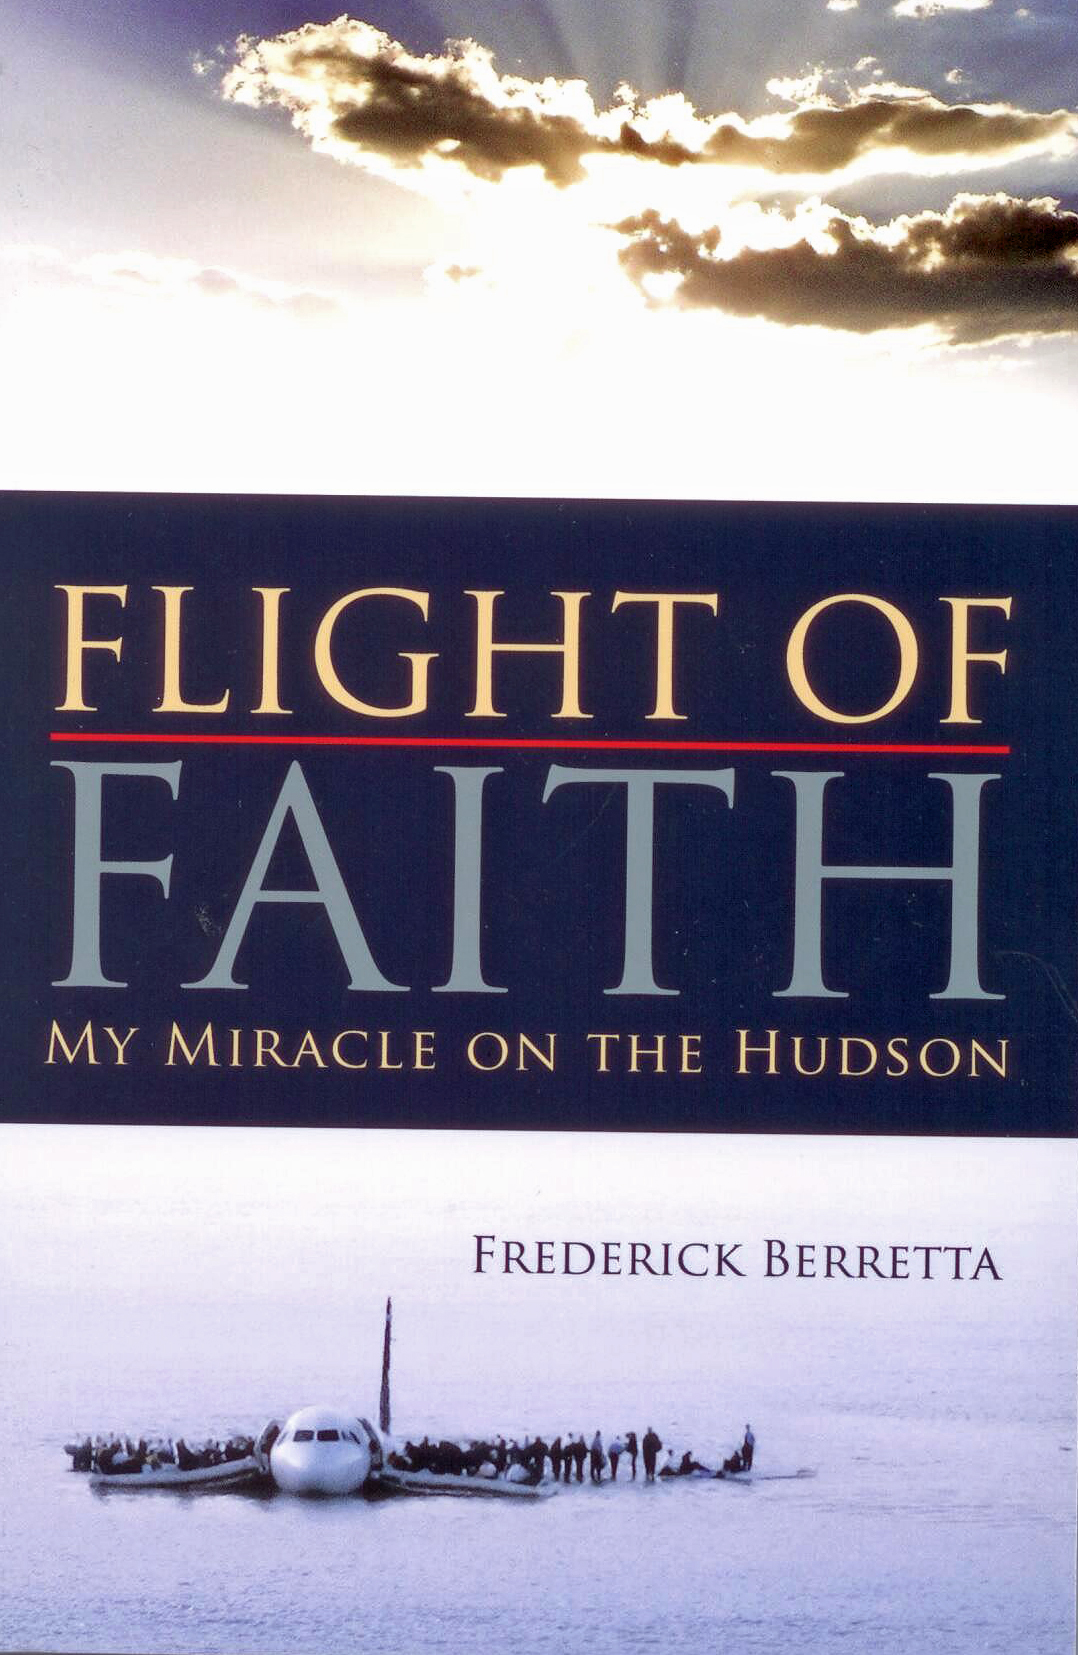 Flight Of Faith: My Miracle on the Hudson by Frederick Berretta